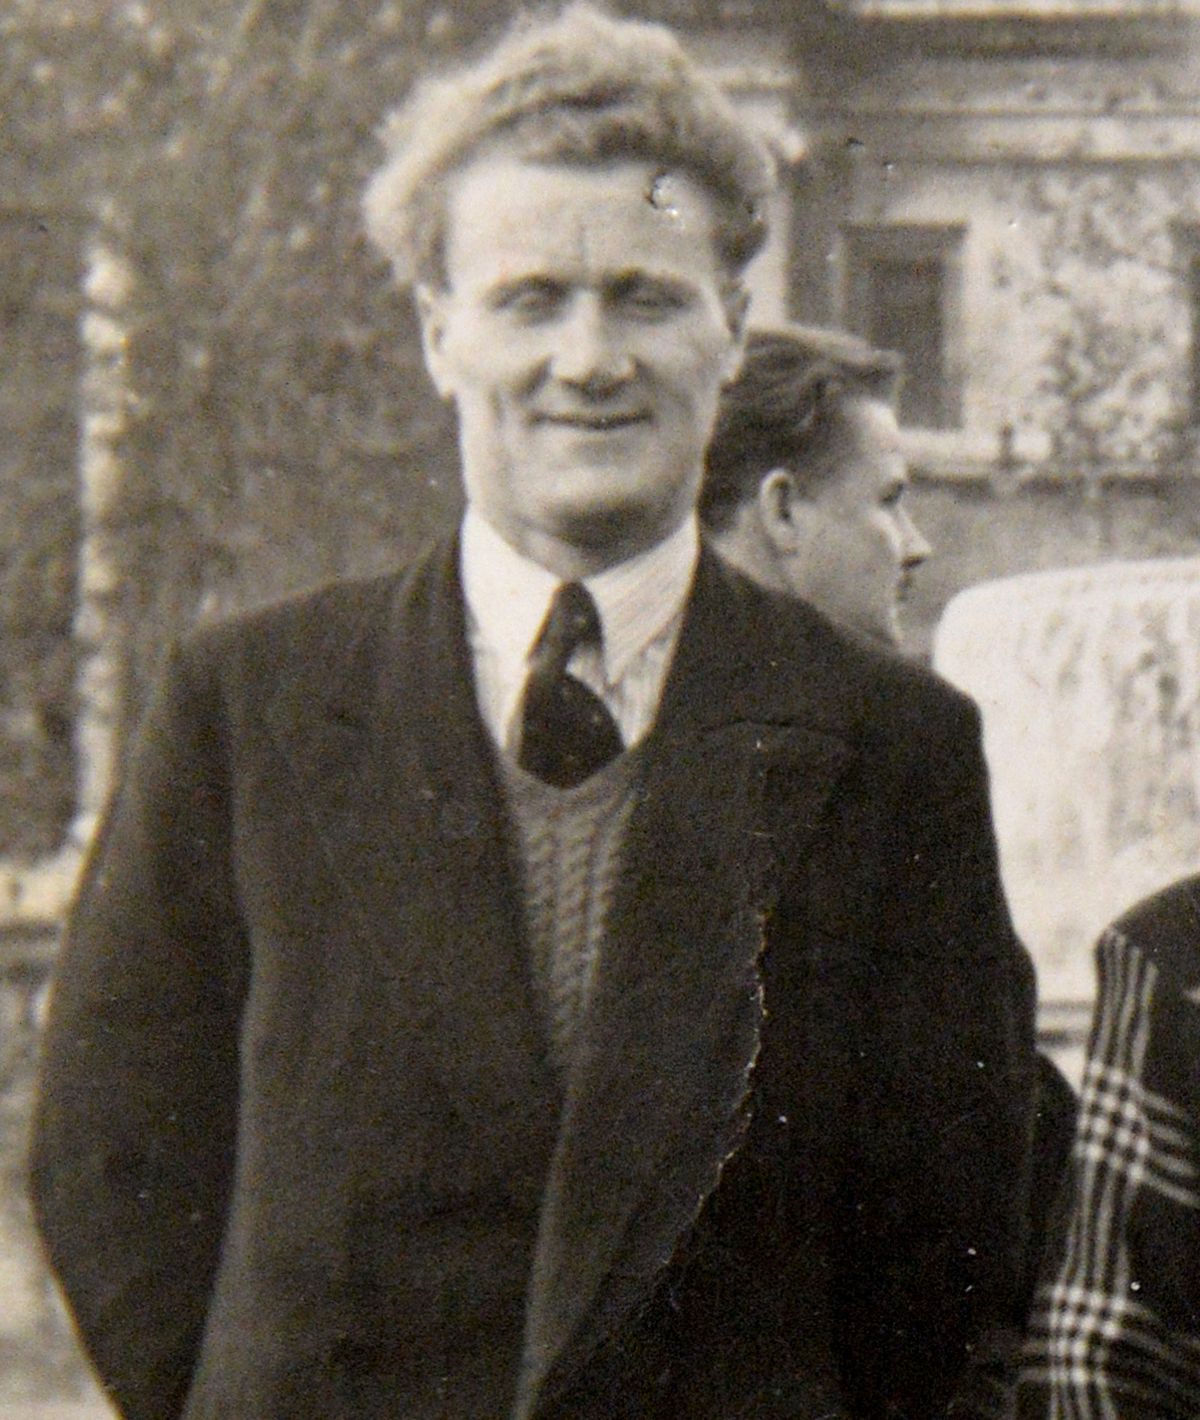 Eddie Budd now 100, pictured in the 1940s